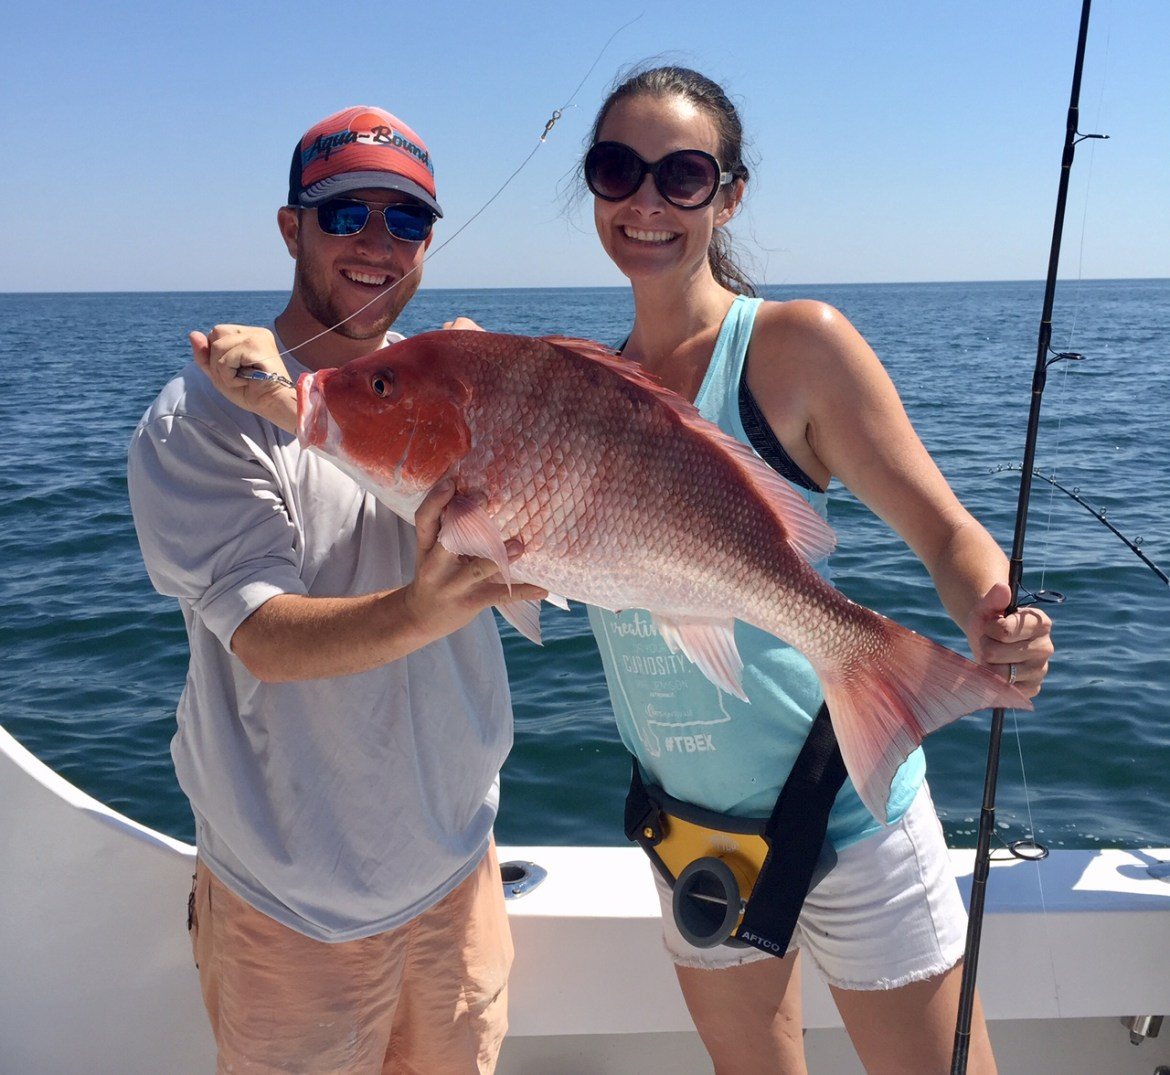 Alabama Beaches | Visit Orange Beach Alabama | Fishing Charters in Orange Beach | Ocean Ox Charters | acupful Family Travel Blog | Mandy Carter- Travel Writer | Captain Jimmy Daniels | #Albeachbreak | Gulf Shores Vacation